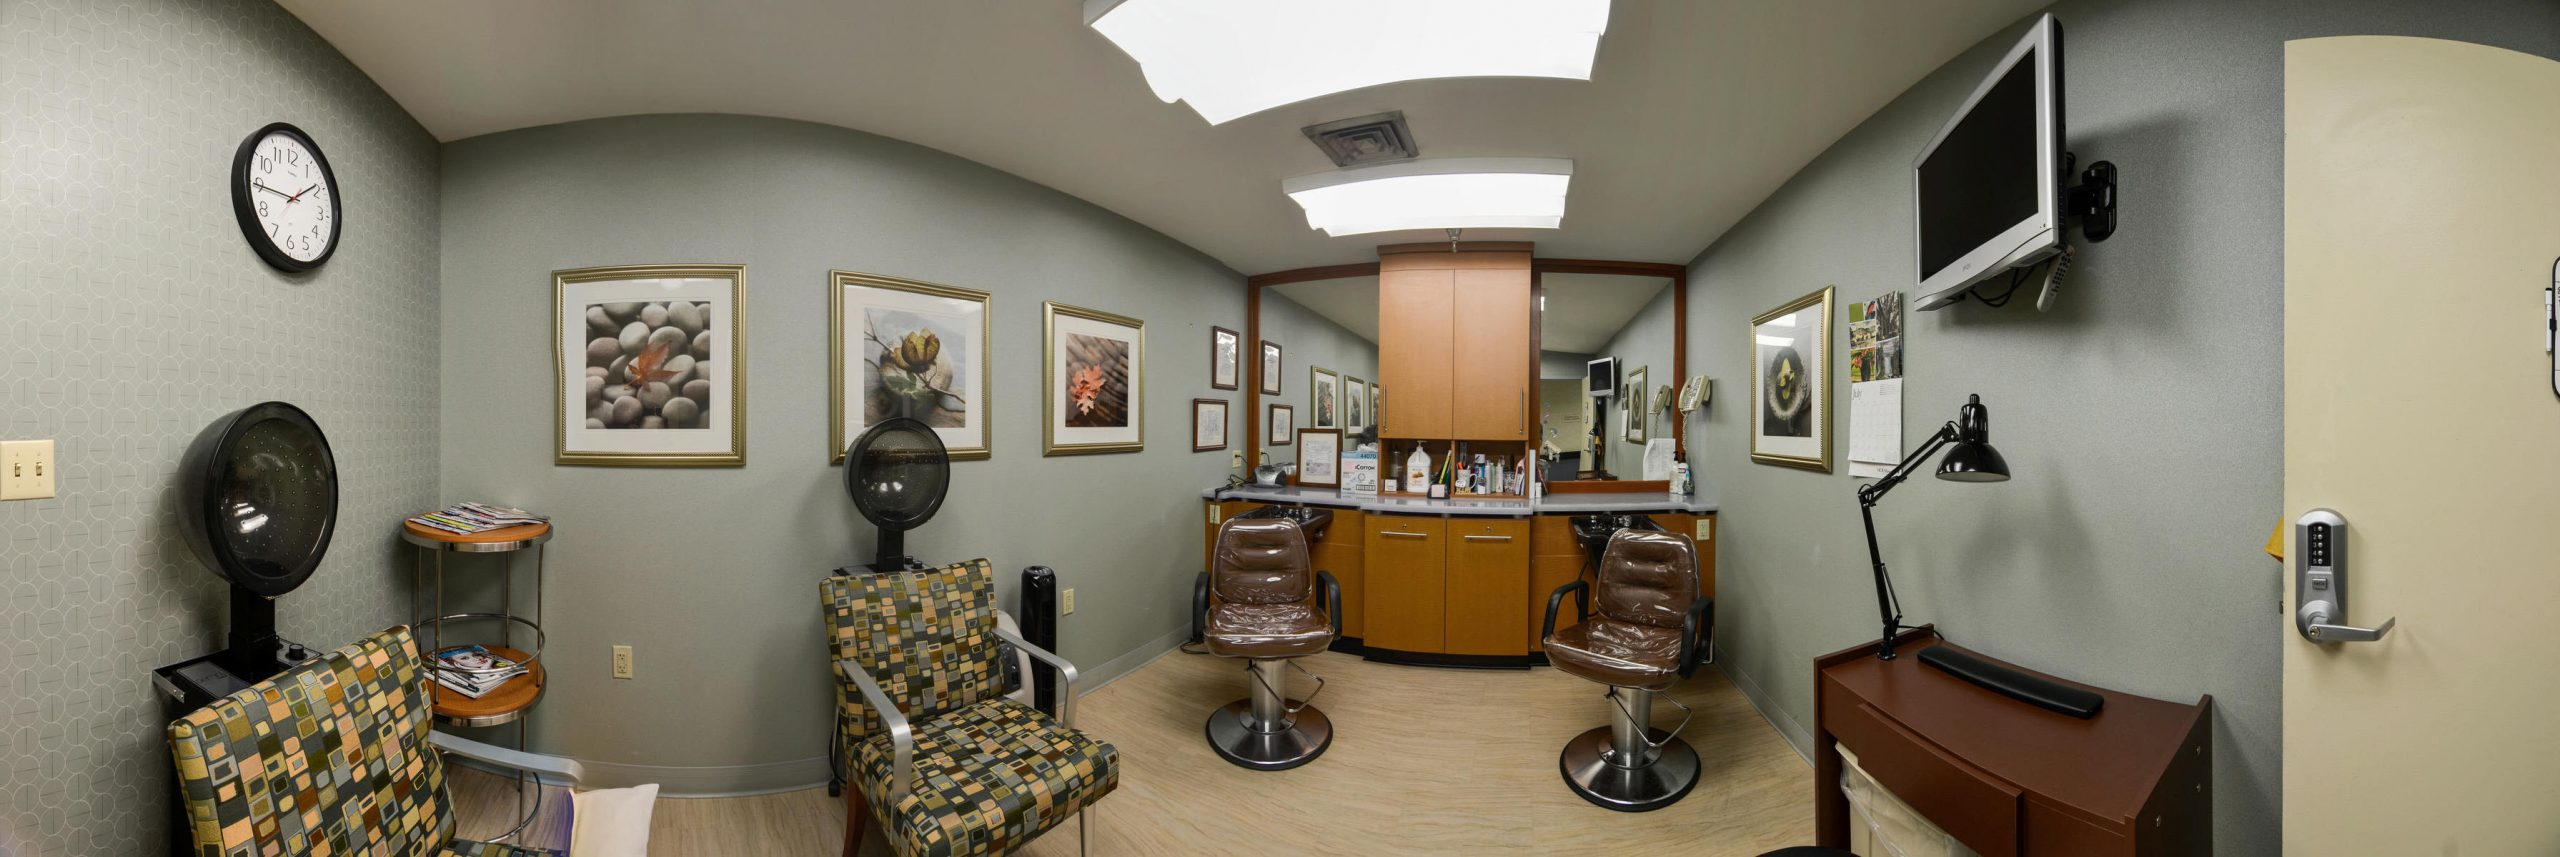 Panoramic view of Stonerise Clarksburg beauty salon with stylist chairs, hair dryers and TV